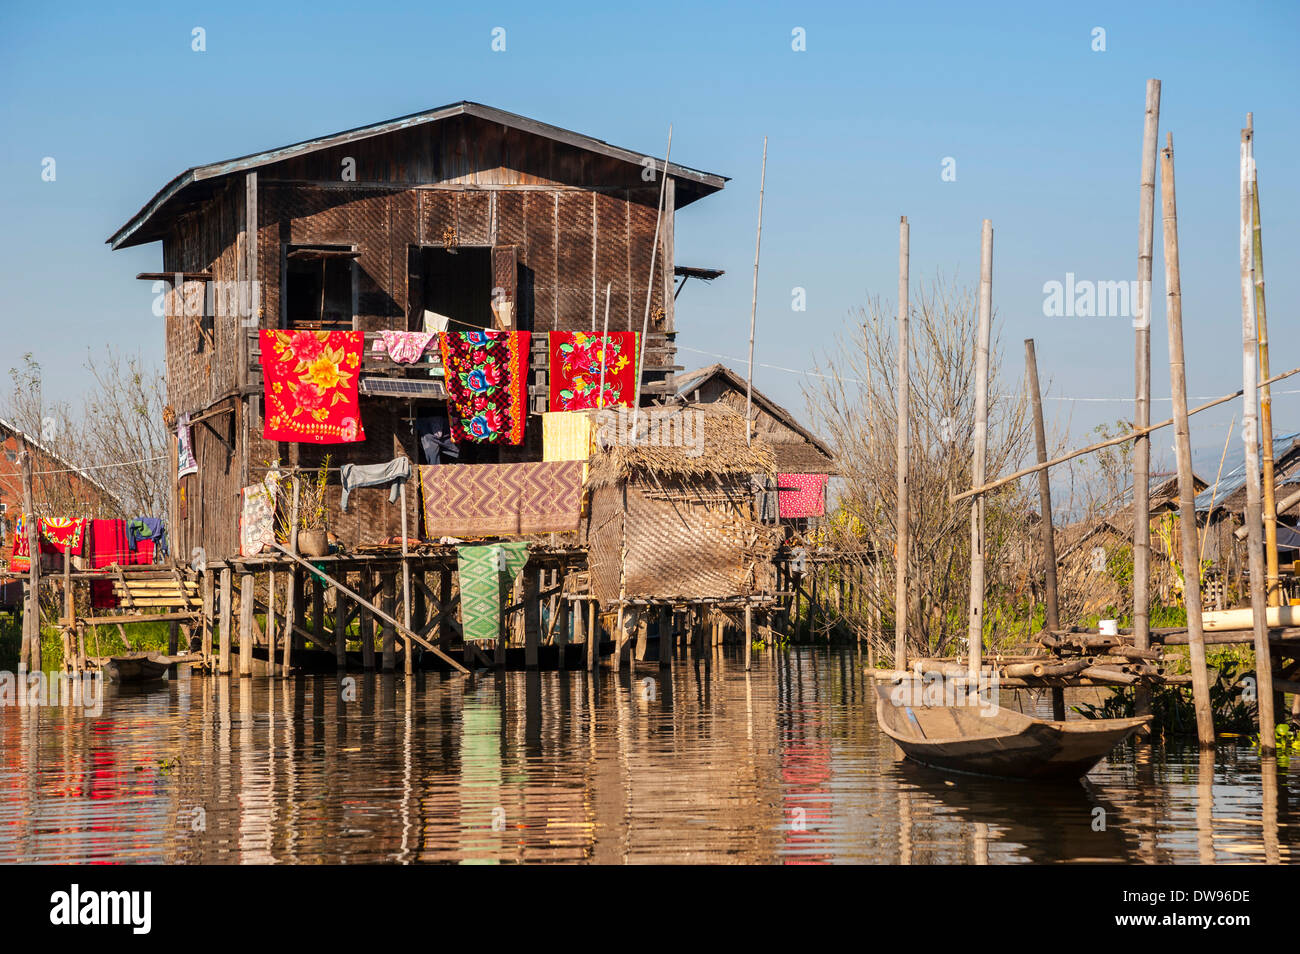 House on the water, floating village, Inle Lake, Shan State, Myanmar - Stock Image